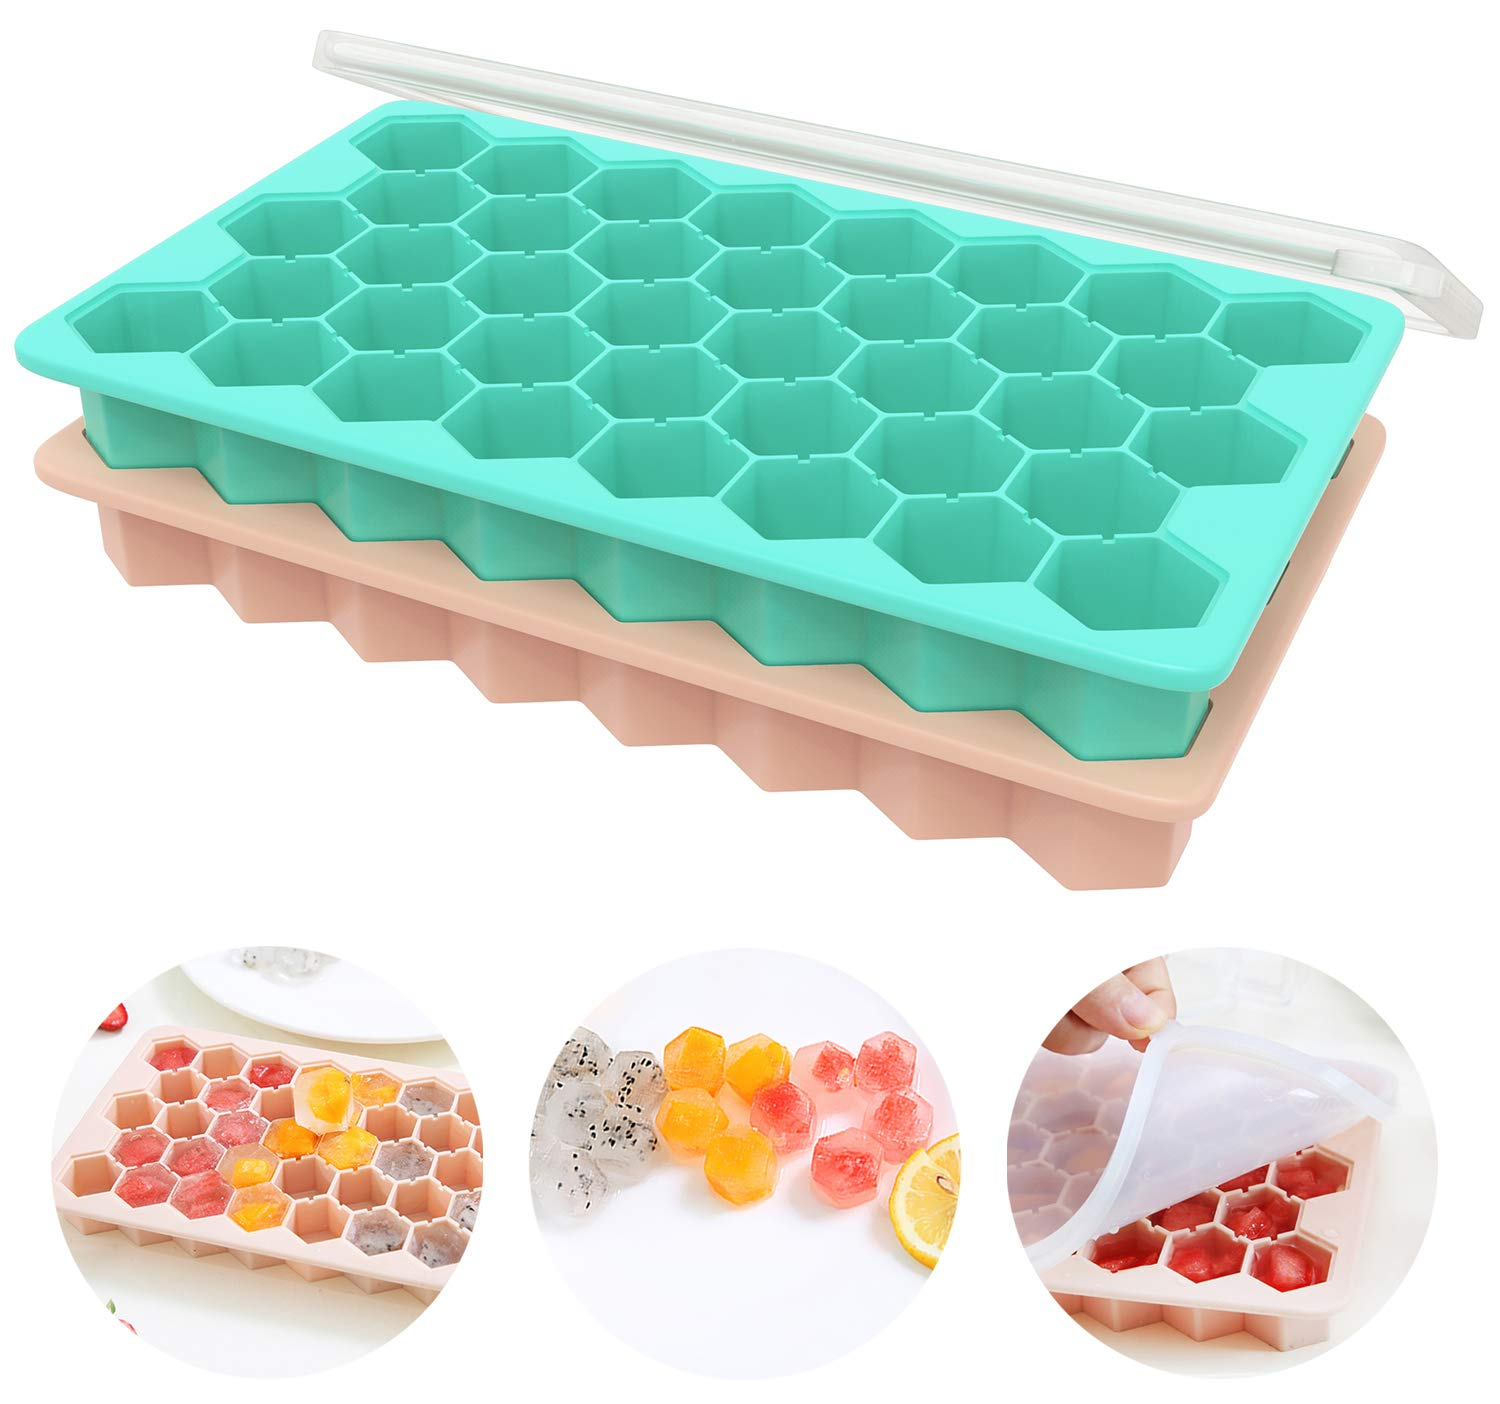 Ice Cube Trays with Lids, Ozera 2 Pack Food Grade Flexible 76 Cubes Silicone Ice Trays with Removable Lid, Ice Cube Molds for Whiskey Storage, Cocktail, Beverages by Ozera